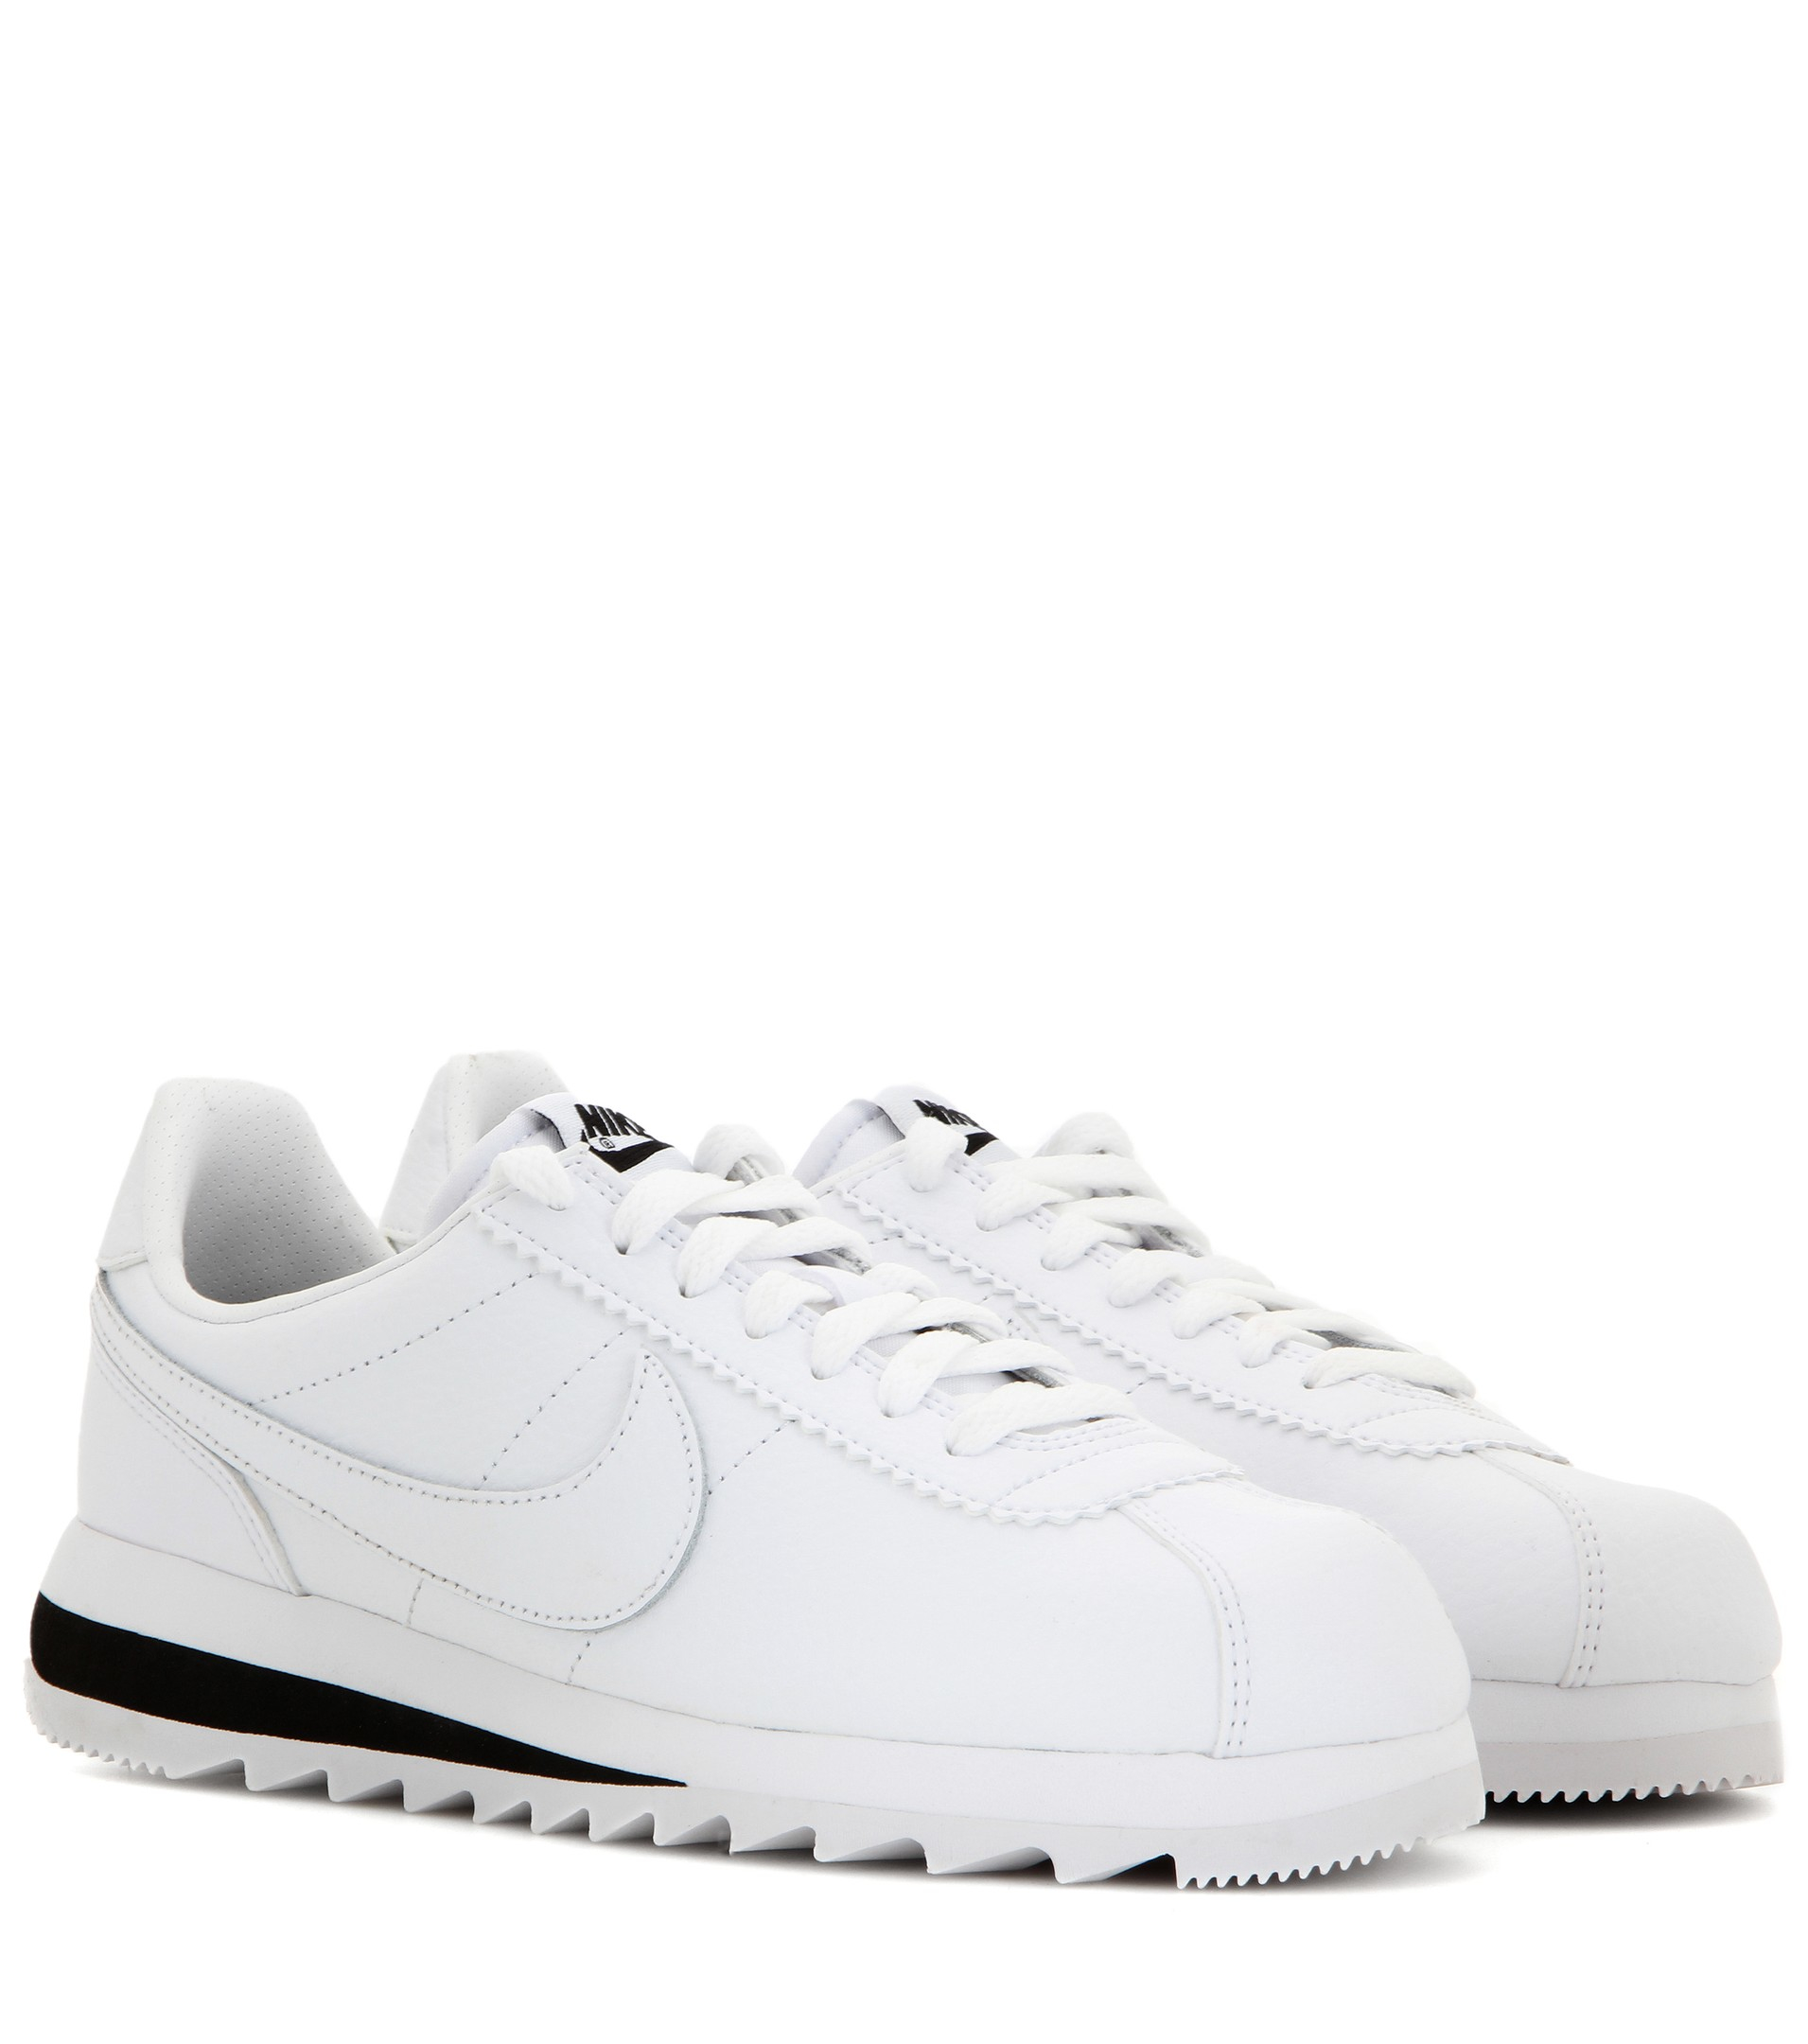 Nike Classic Cortez Epic Premium Leather Sneakers in White